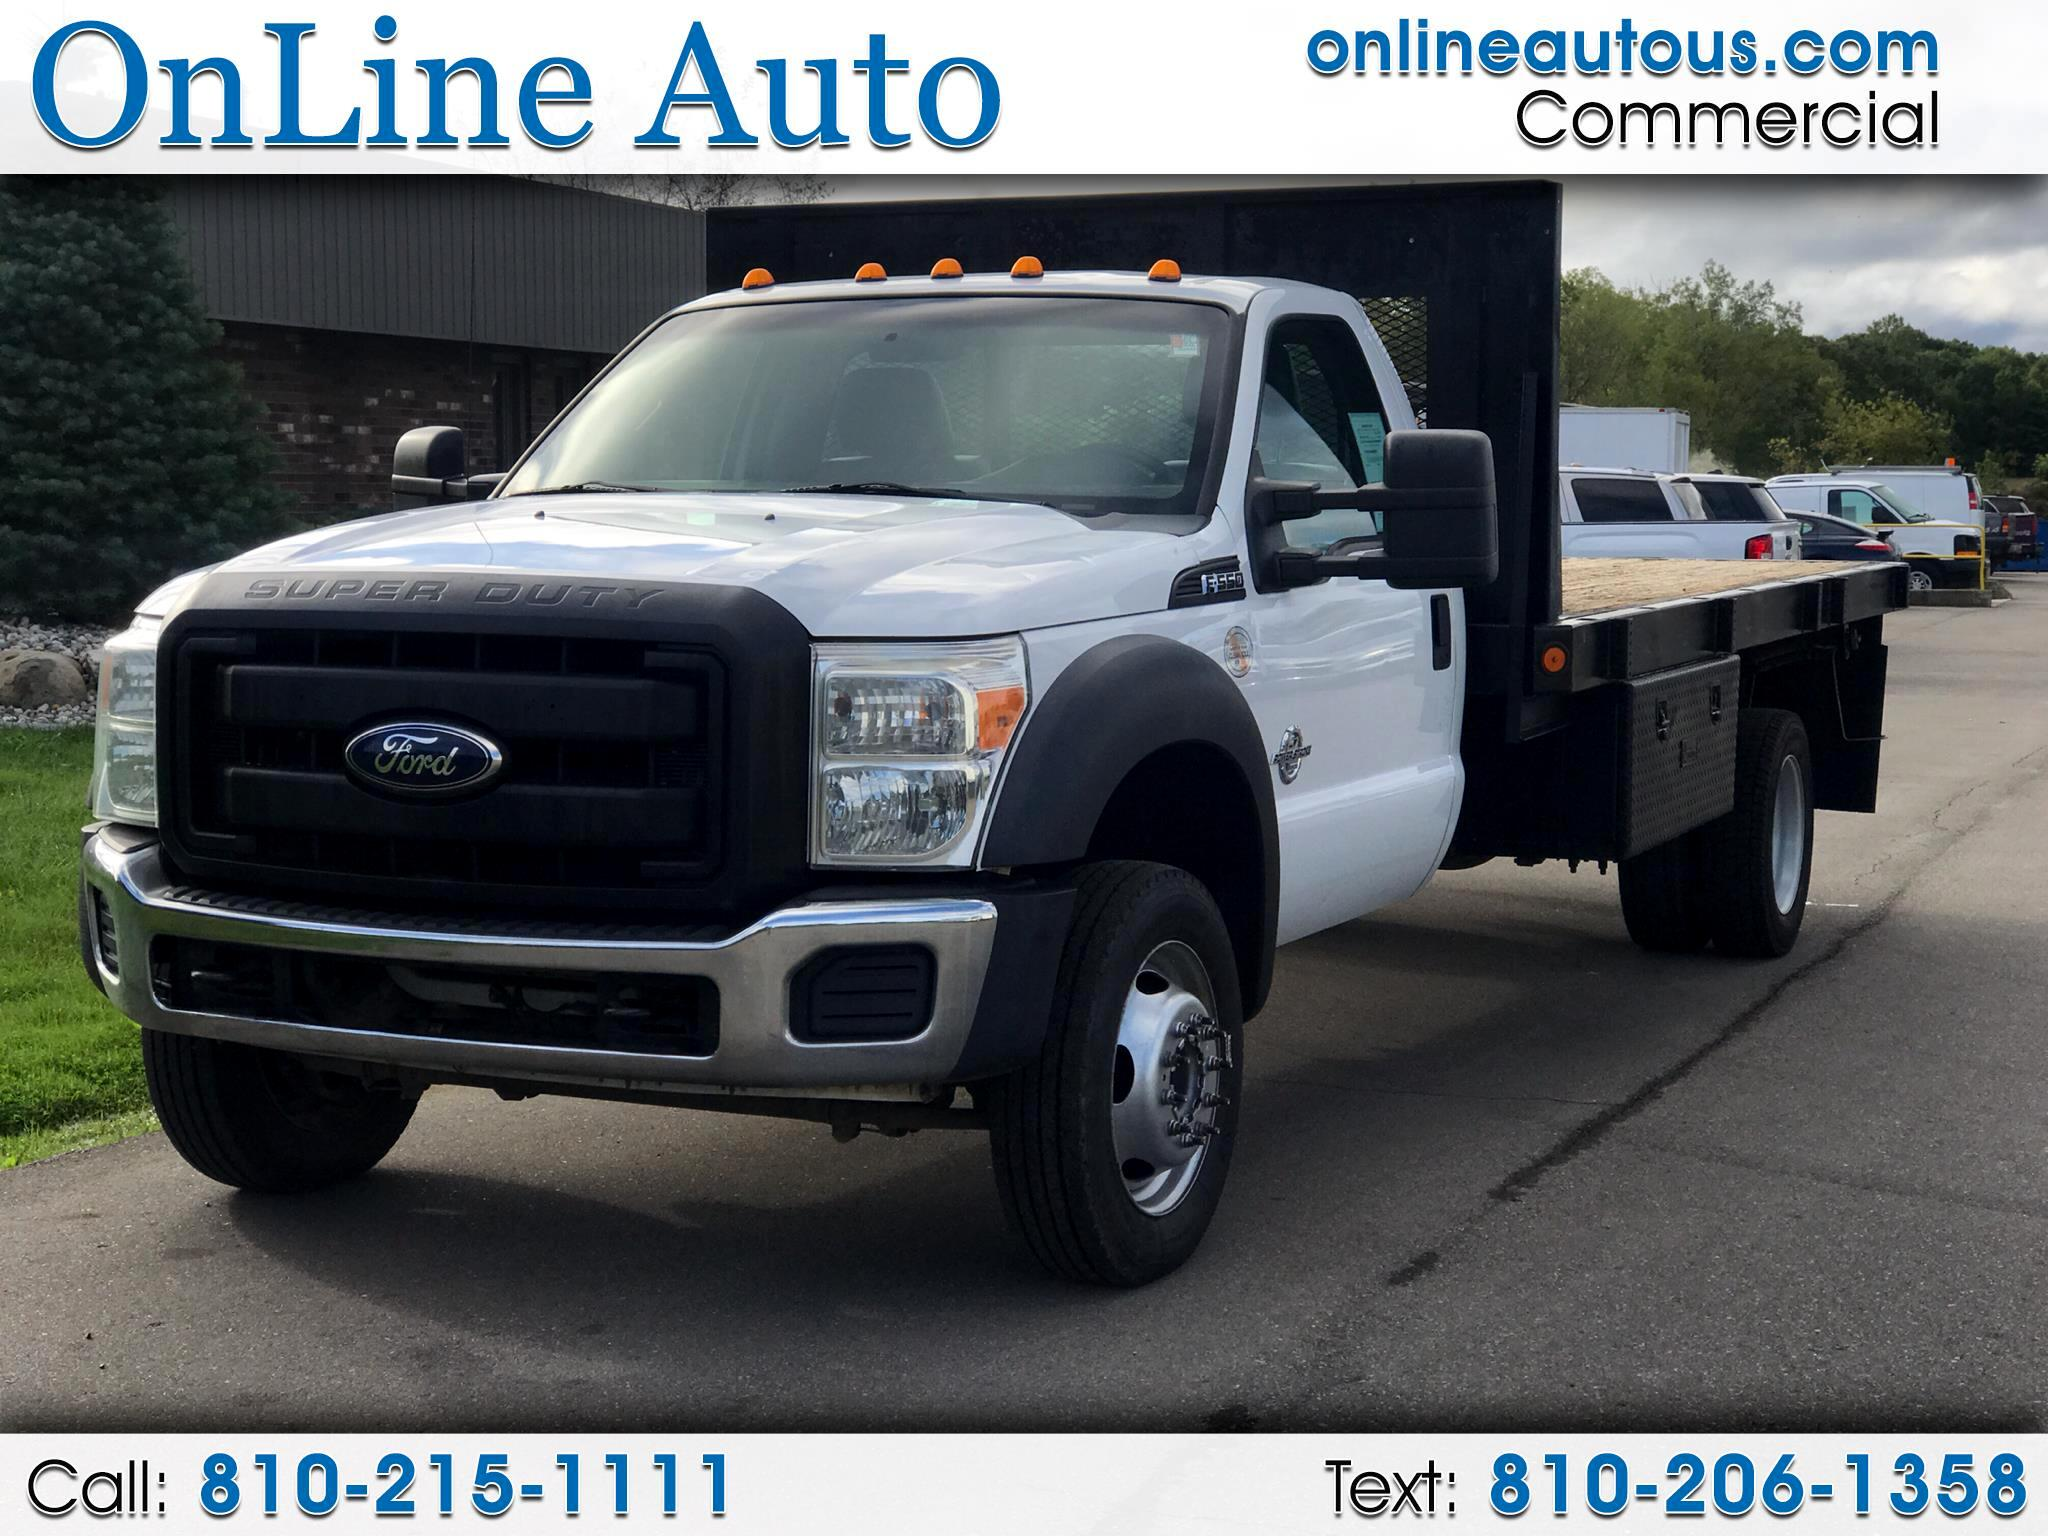 2011 Ford Super Duty F-550 DRW UTILITY TRUCK